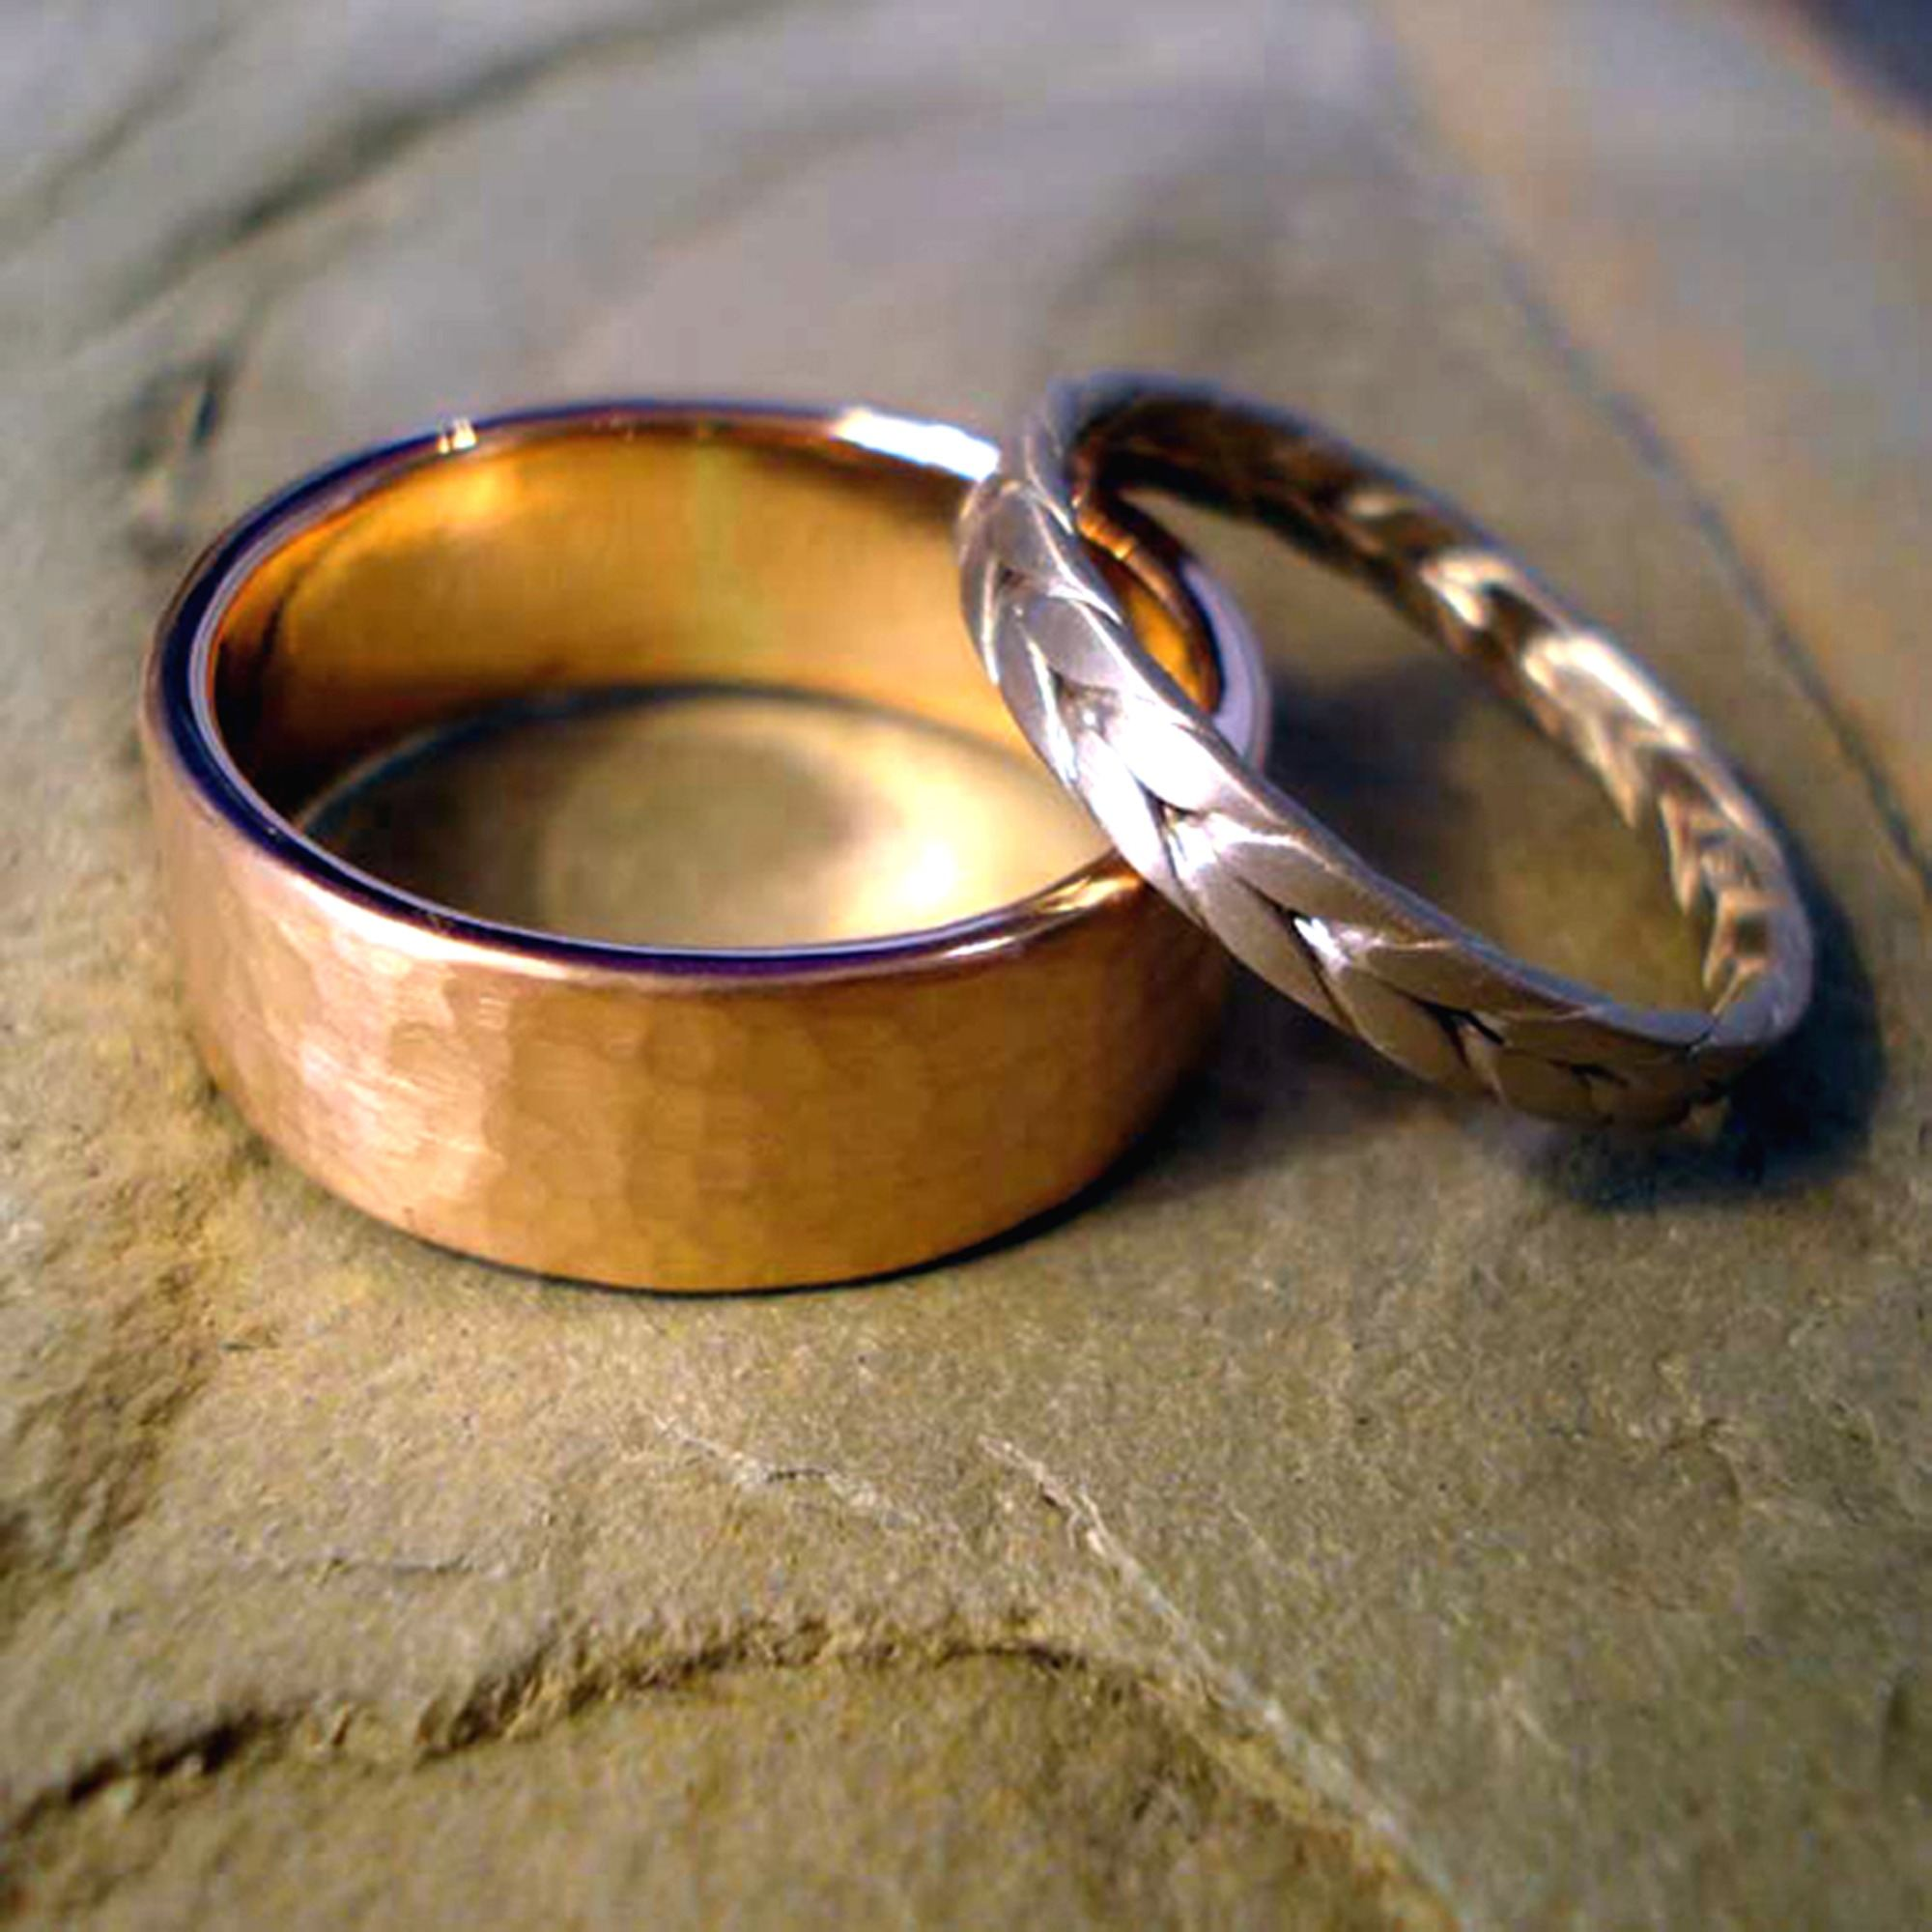 announced jewellery in new wedding now medieval collection s enquiries our recently unique design blog rings first of years adding chupi re mensweddingbands we after men to bands mens delighted the form be cufflinks